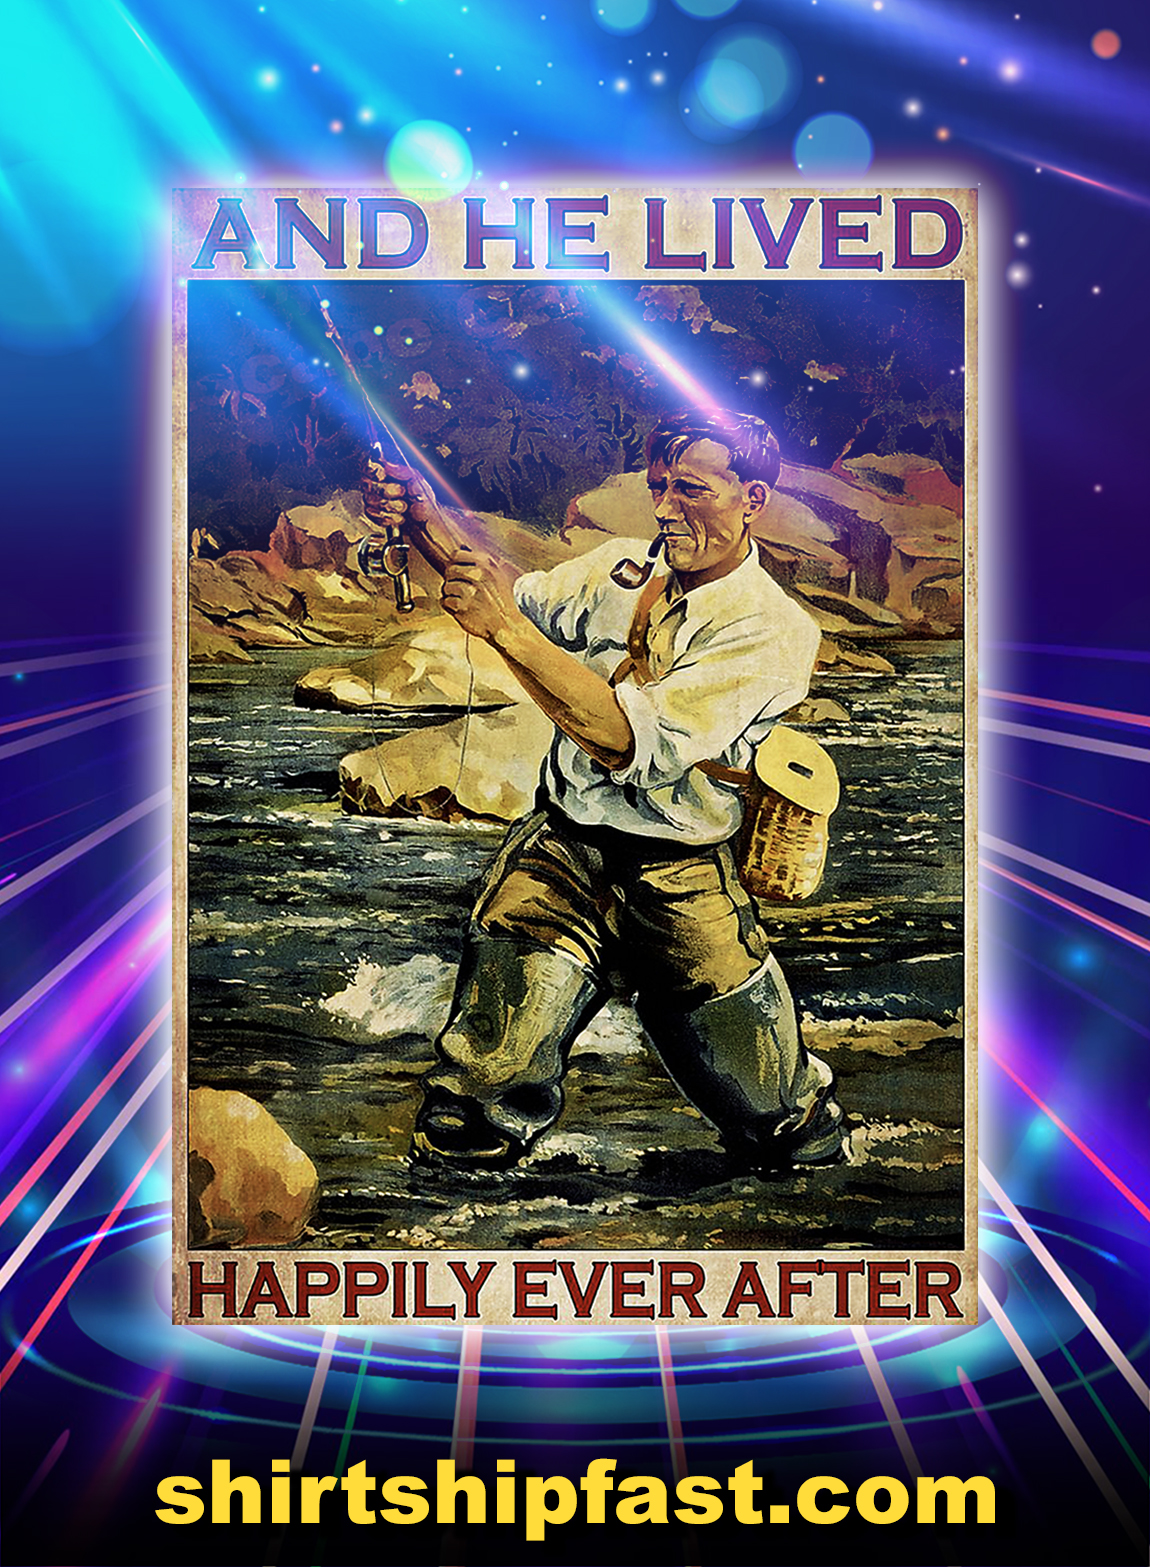 Fishing and he lived happily ever after poster - A2